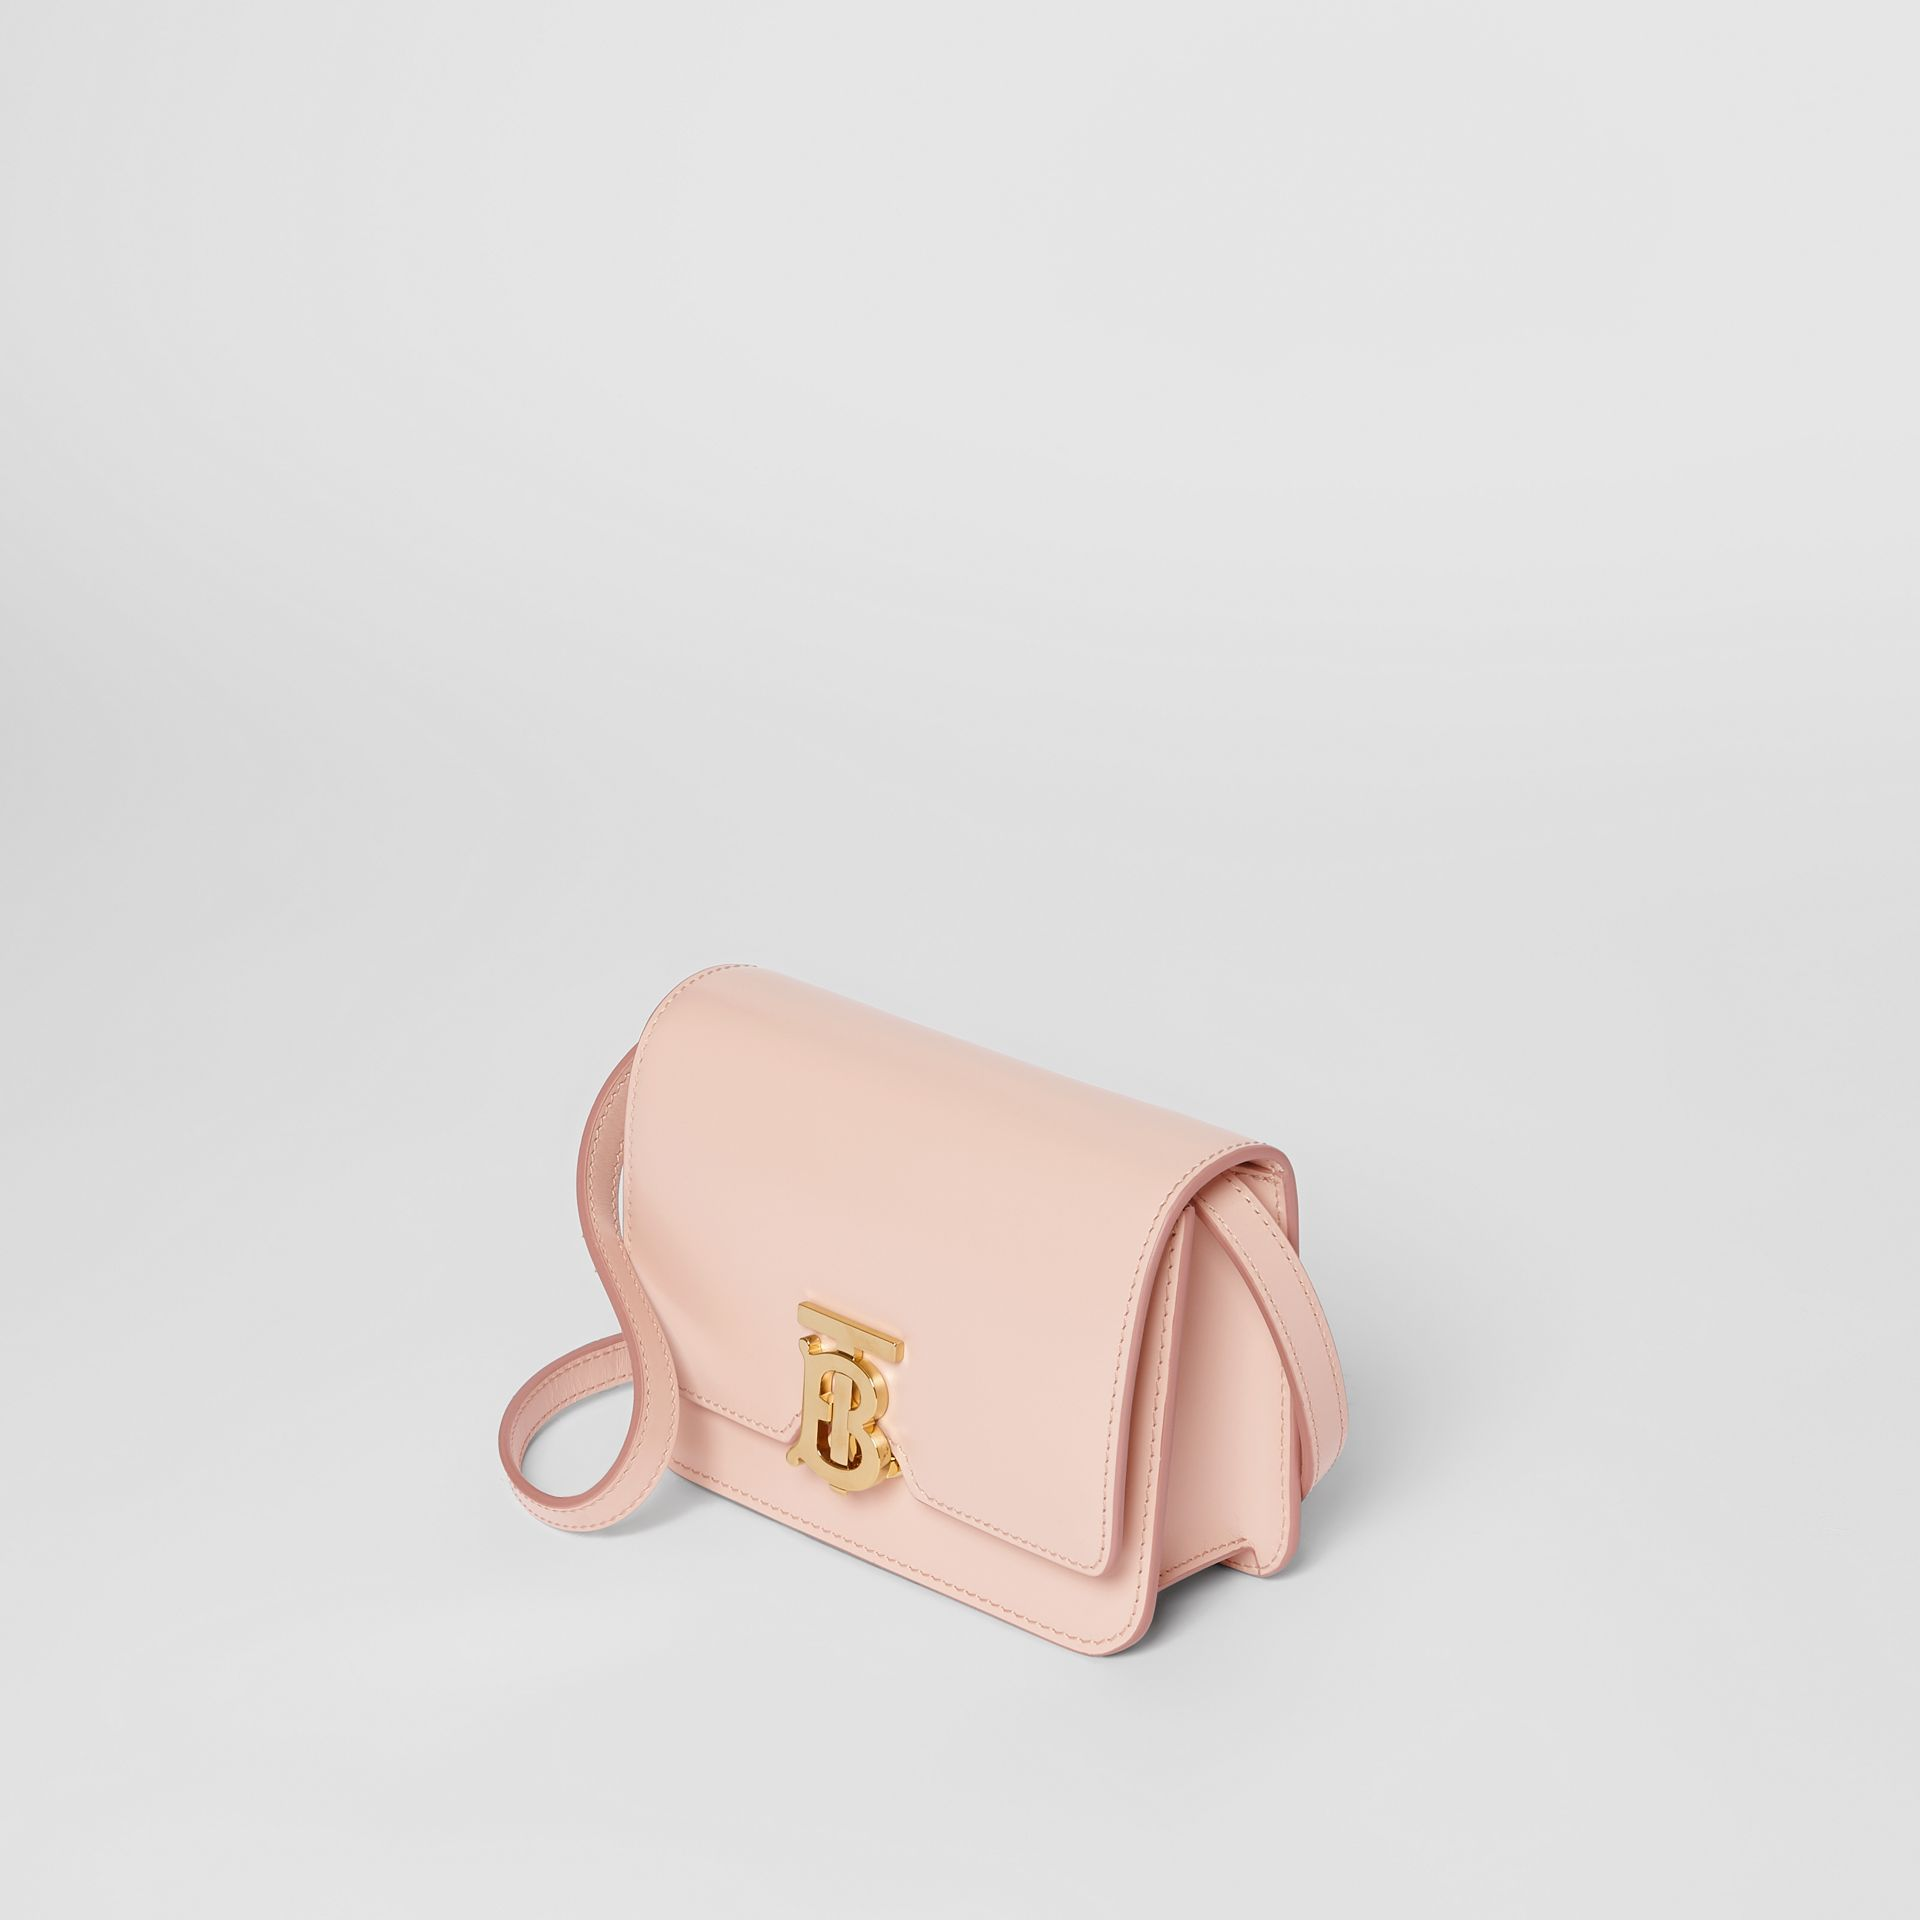 Mini Leather TB Bag in Rose Beige - Women | Burberry Hong Kong S.A.R - gallery image 3